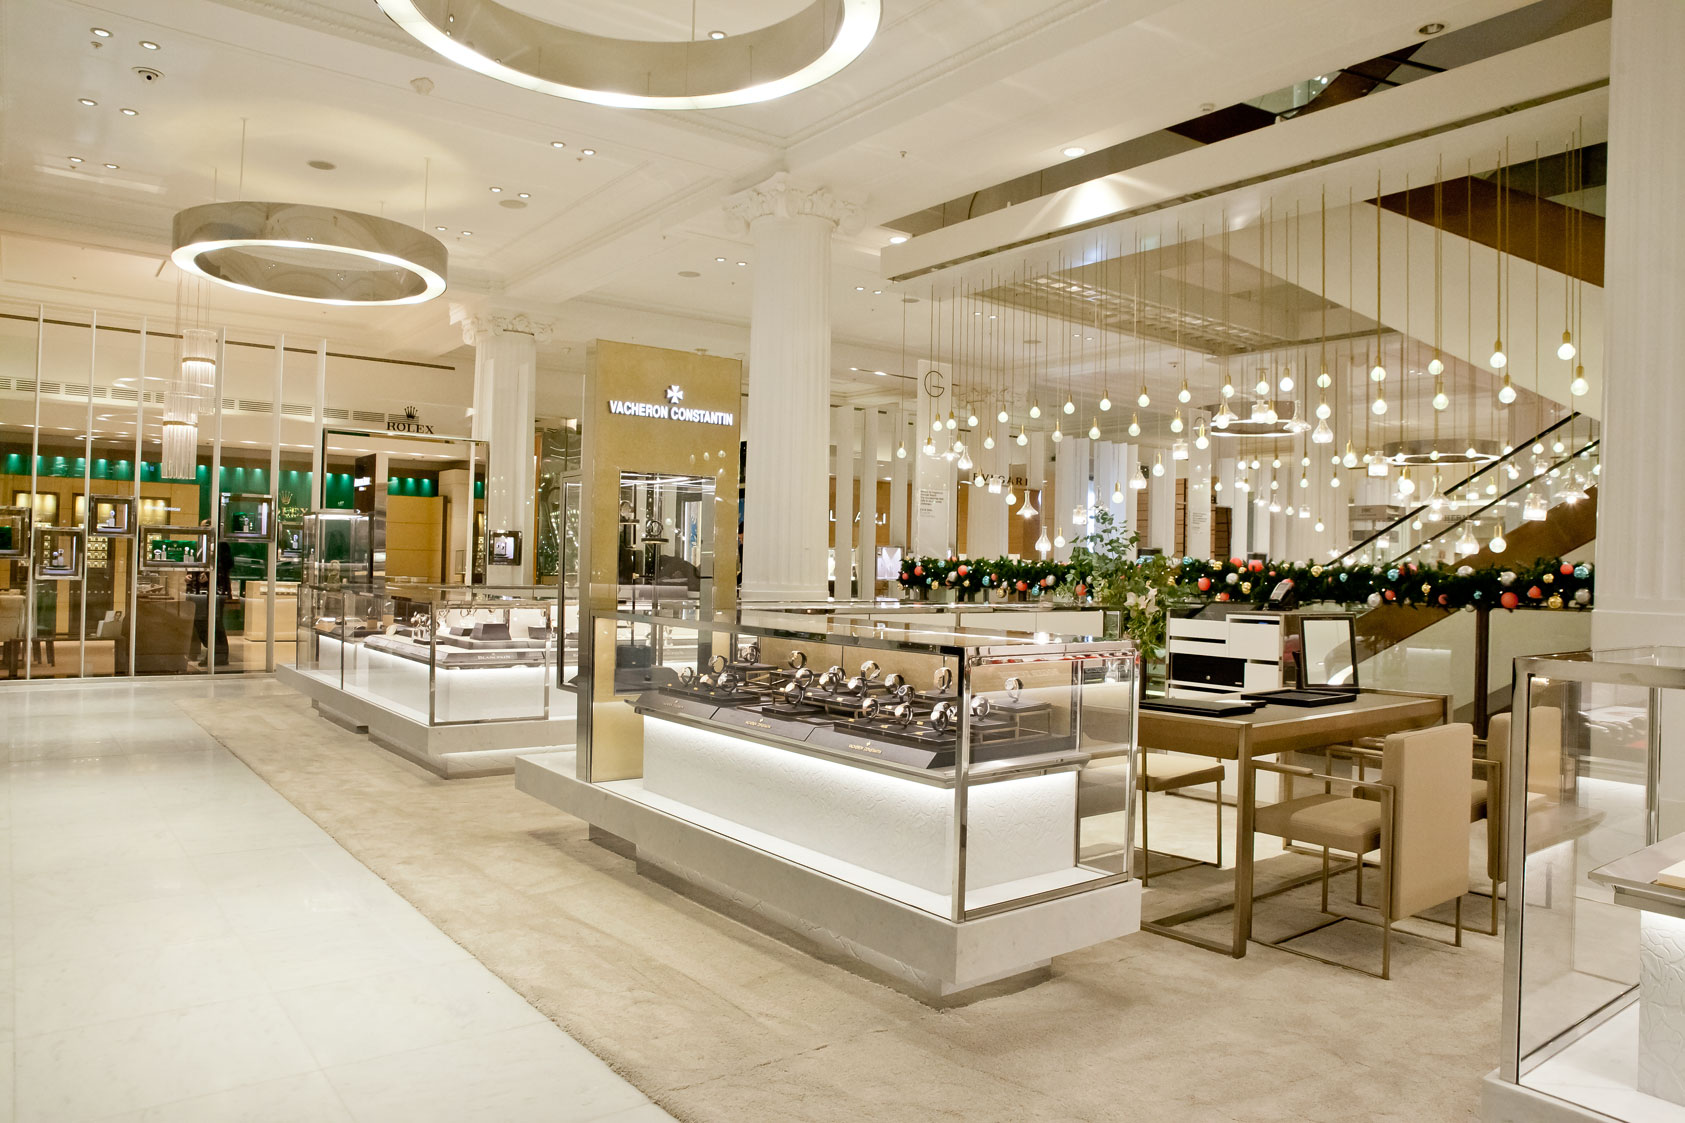 The newly refurbished Wonder Room at Selfridges is 35 percent larger, has fewer brands, and gives them more space and a more luxurious environment.